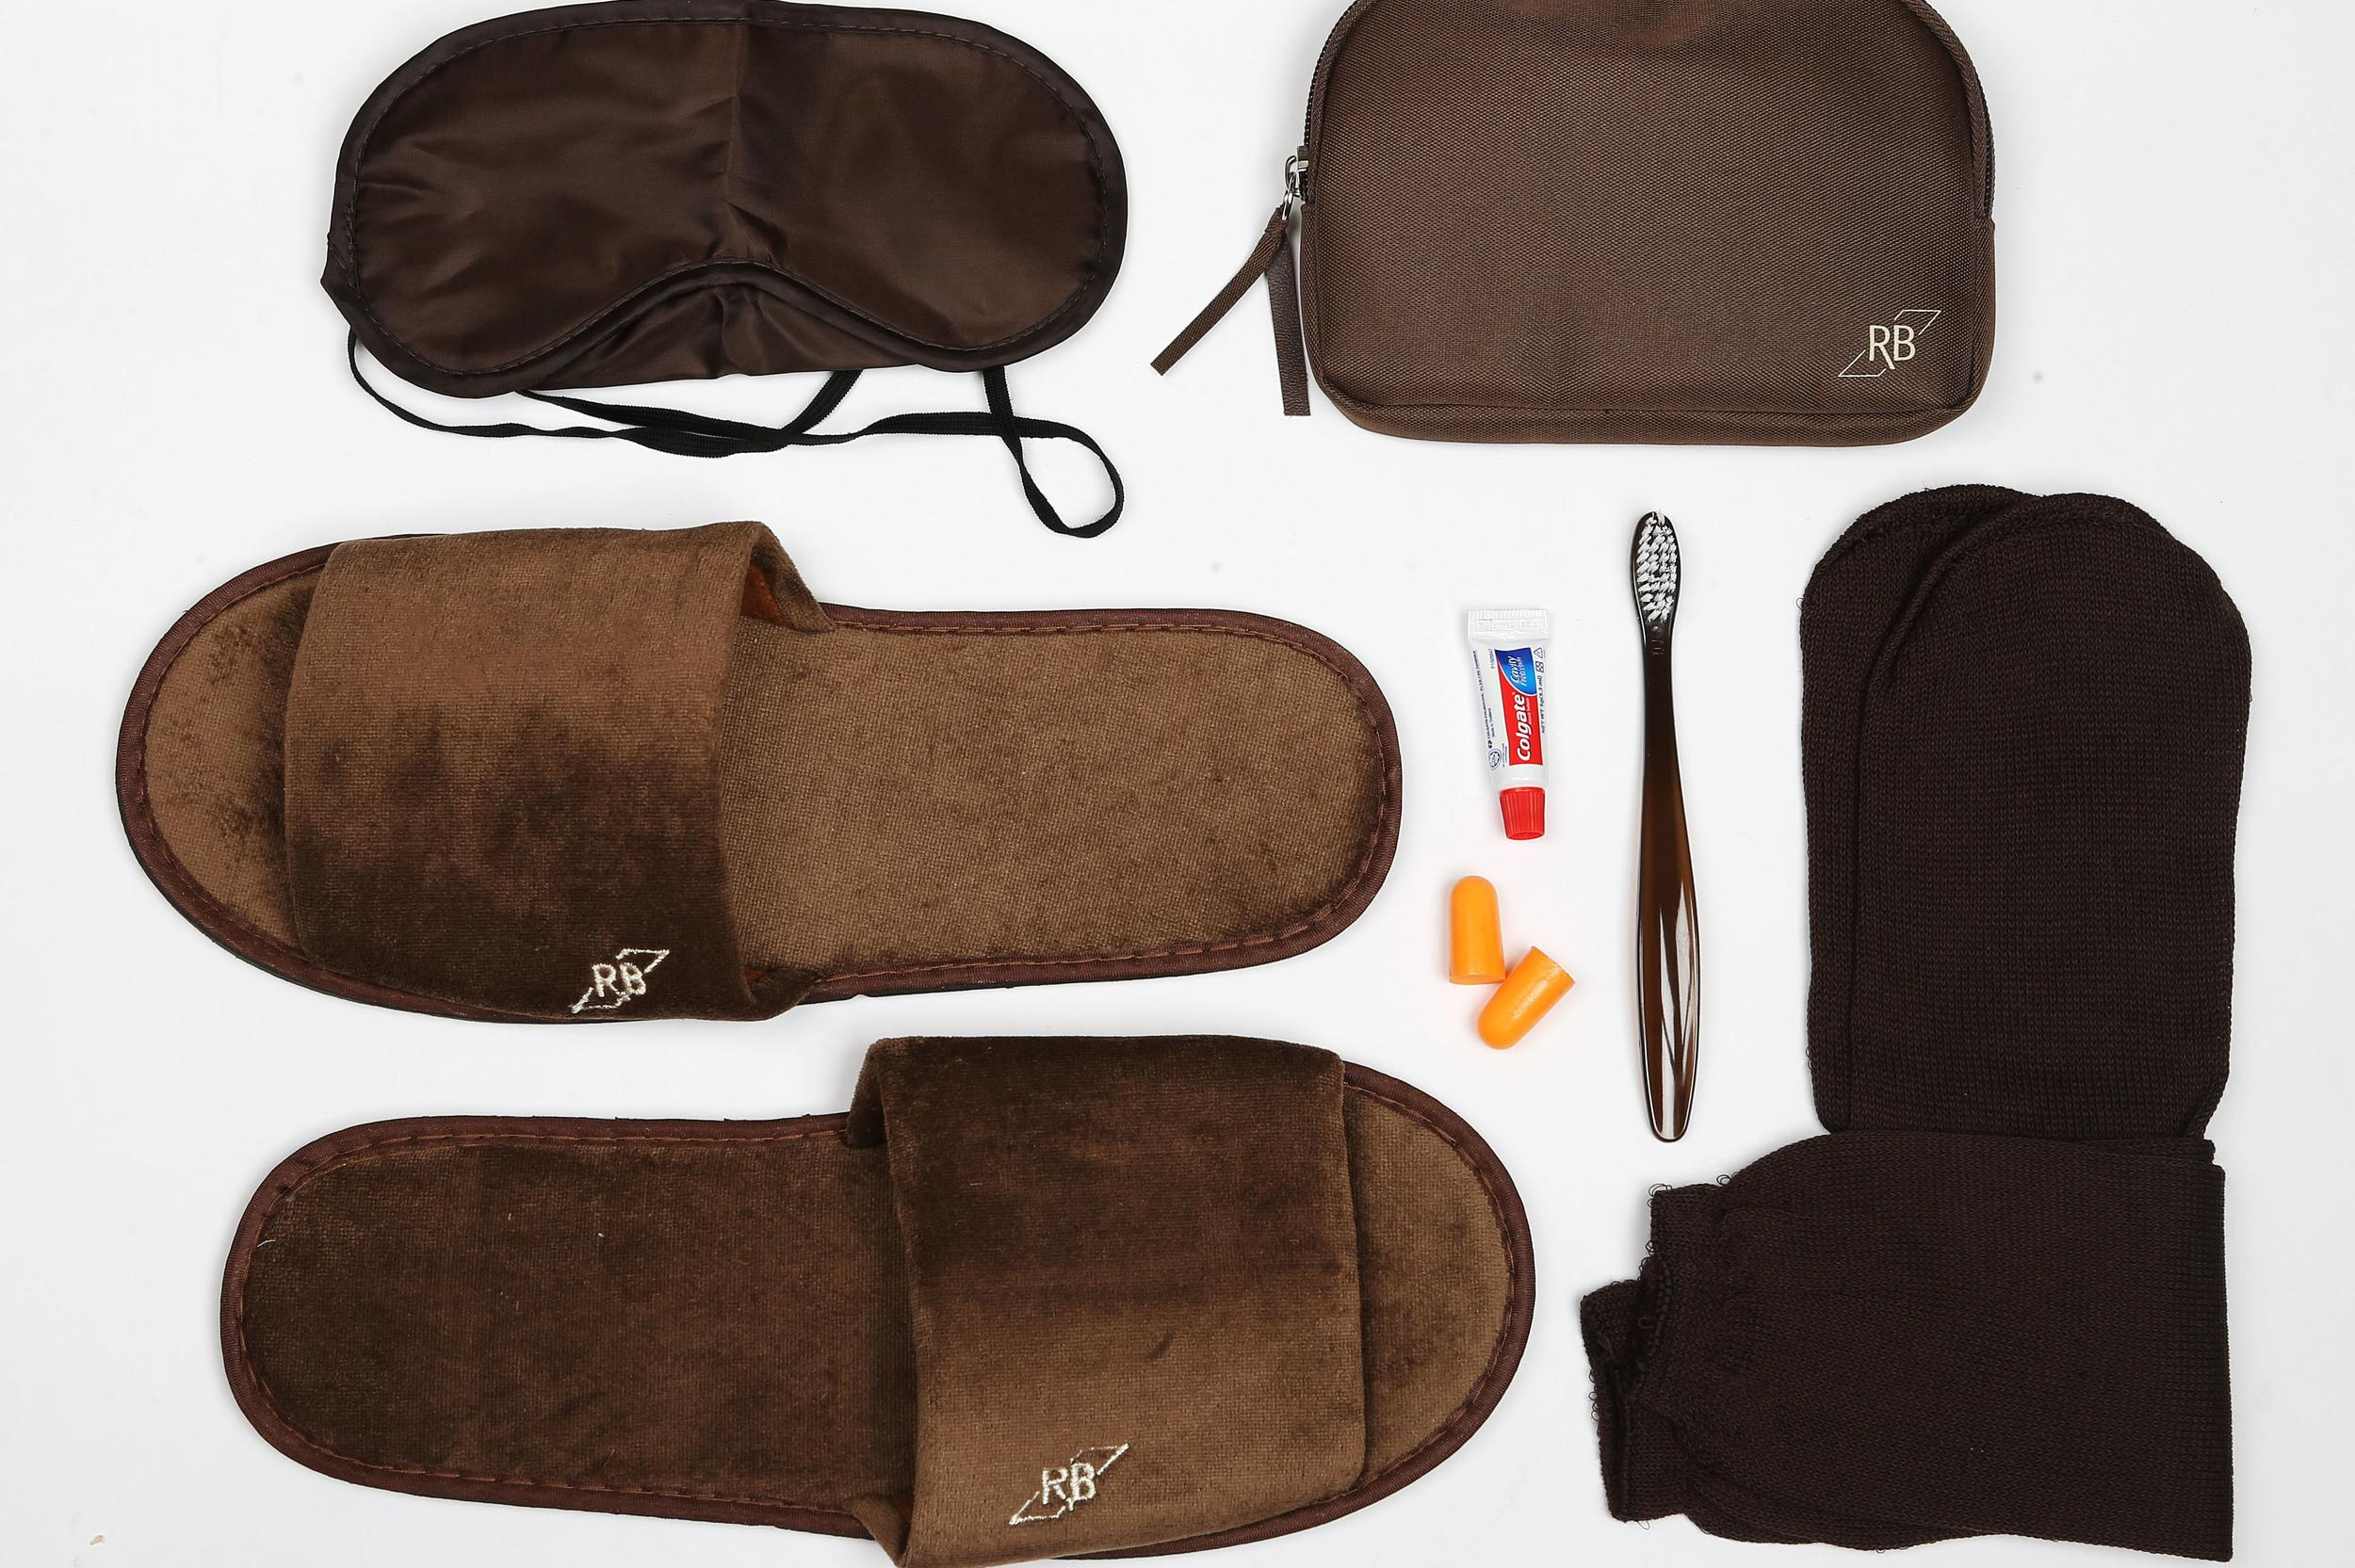 <p><strong>What do you get?</strong> Inside the little brown bag passengers find: Eye mask, socks, toothbrush, toothpaste, ear plugs, slippers<br /> <strong>Best bit of the kit?</strong> The slippers!</p>